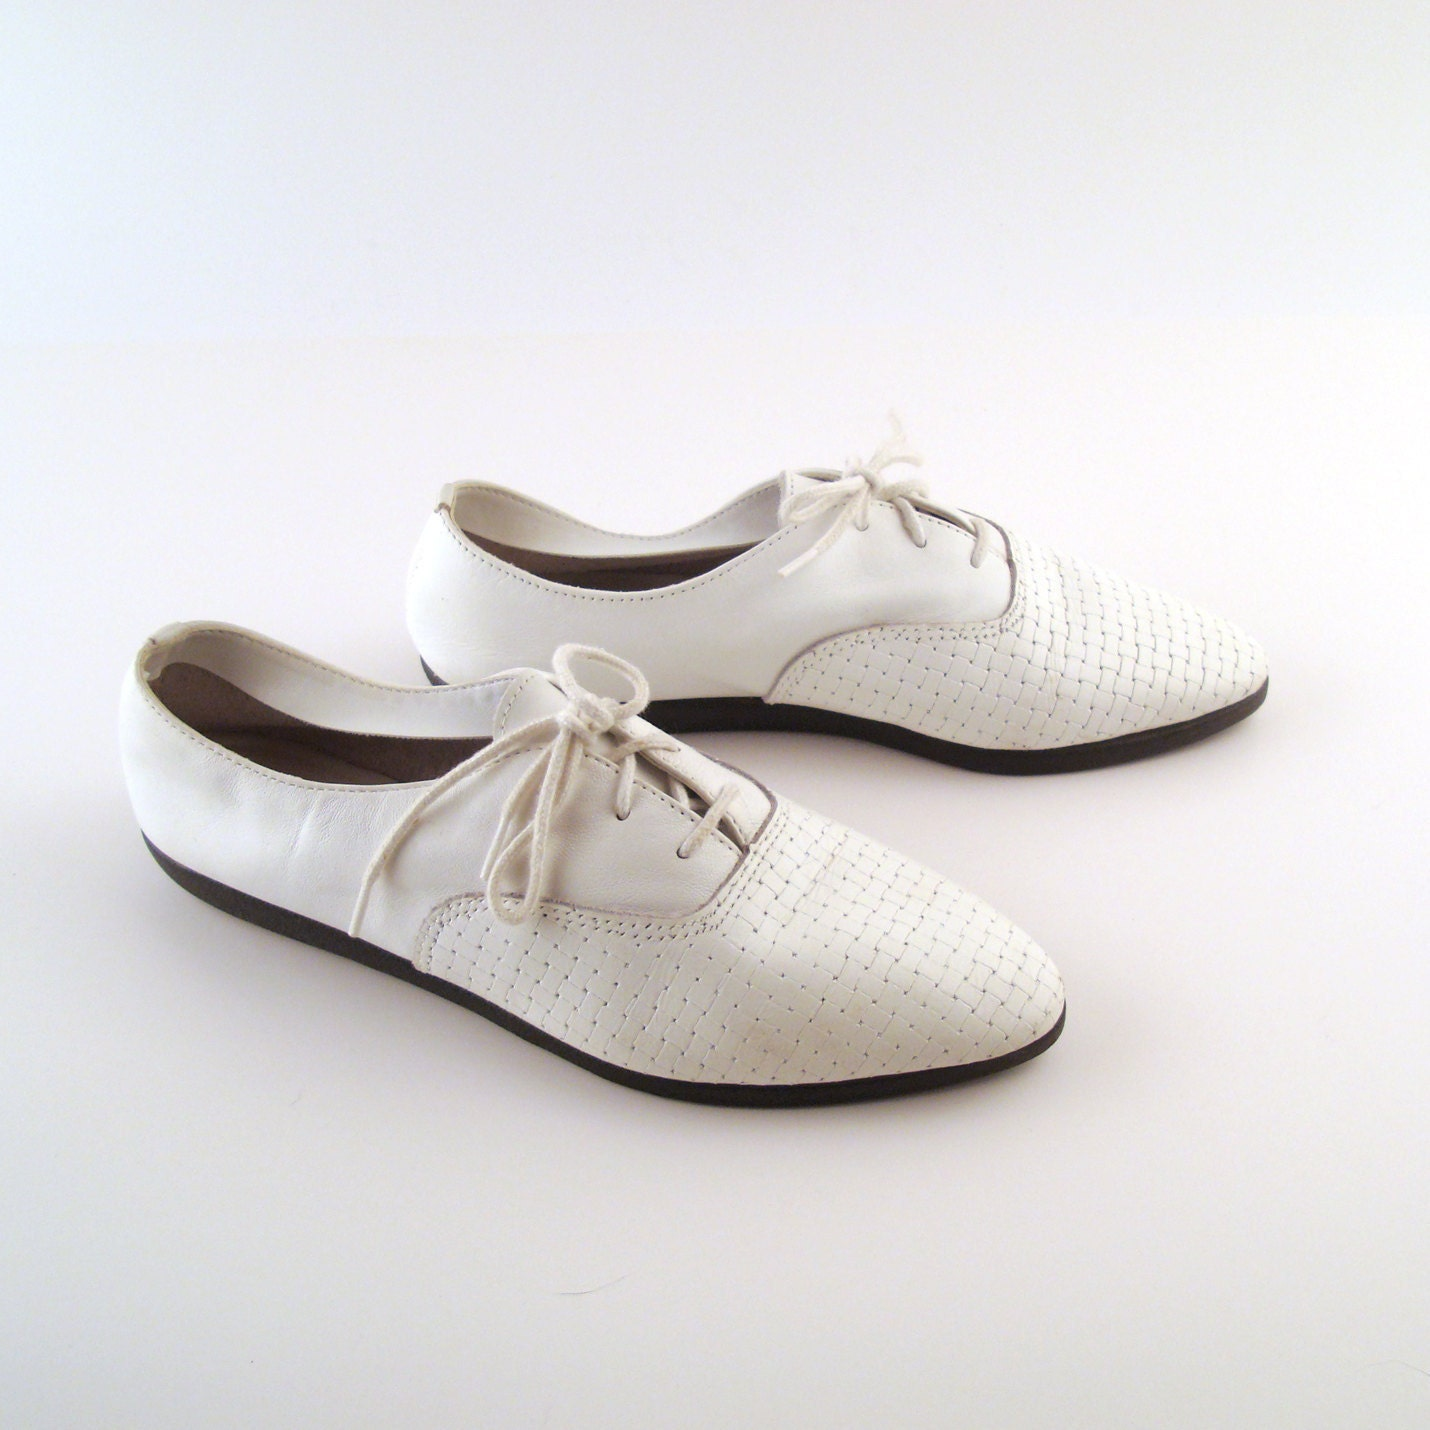 Women S Oxfords White Leather Vintage 1980s Shoes